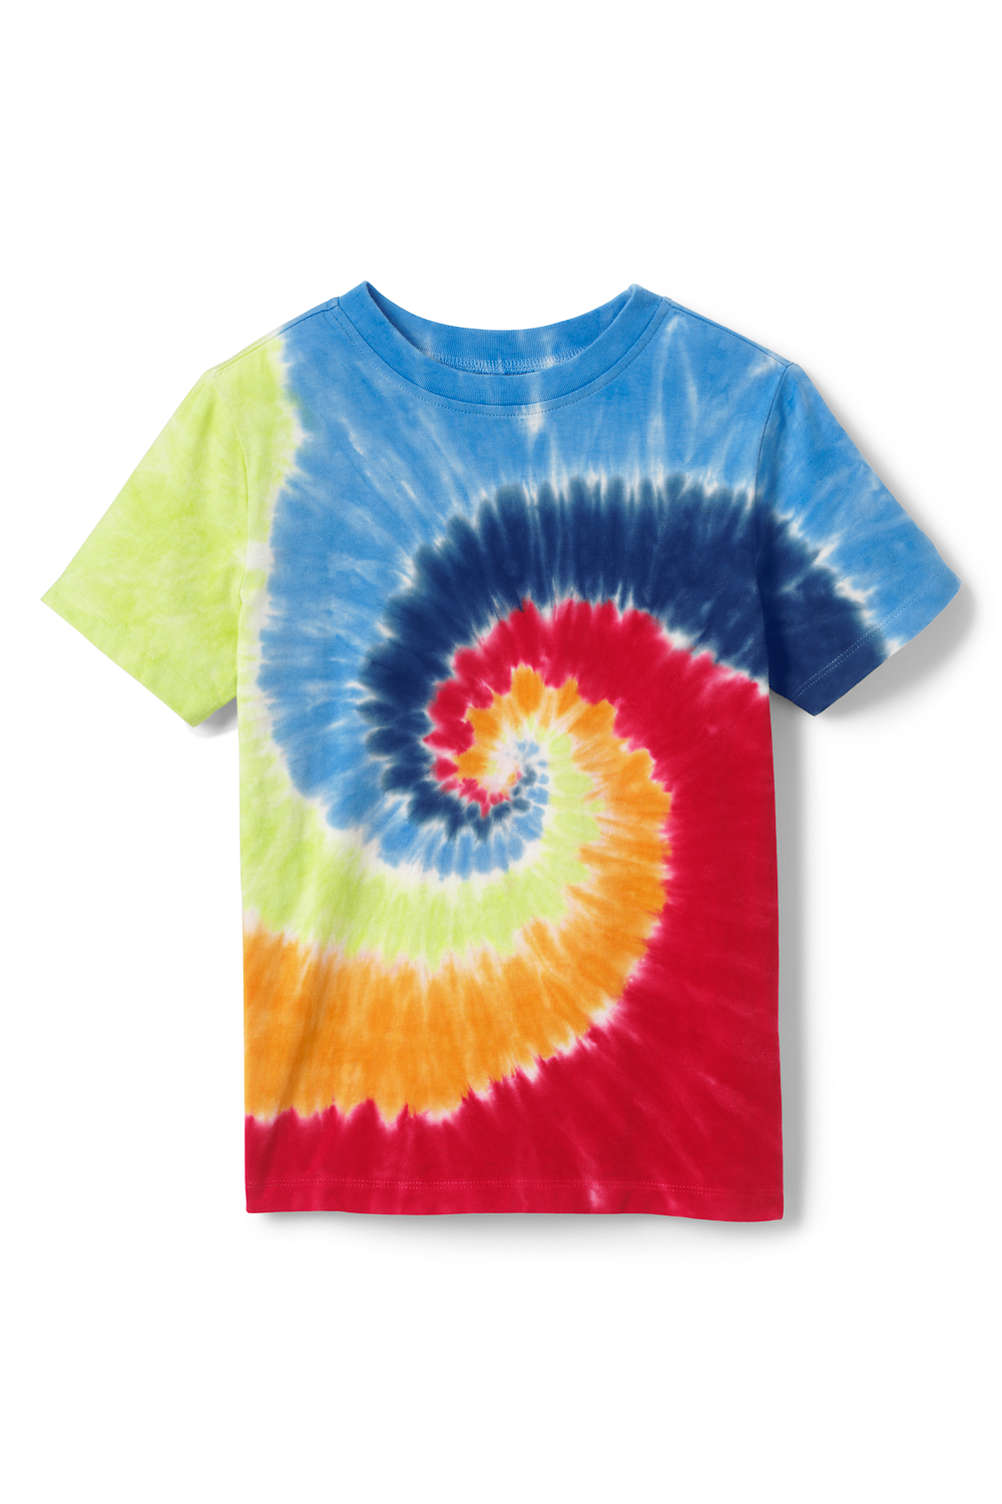 2beed40da Boys Tie Dye T Shirt from Lands' End